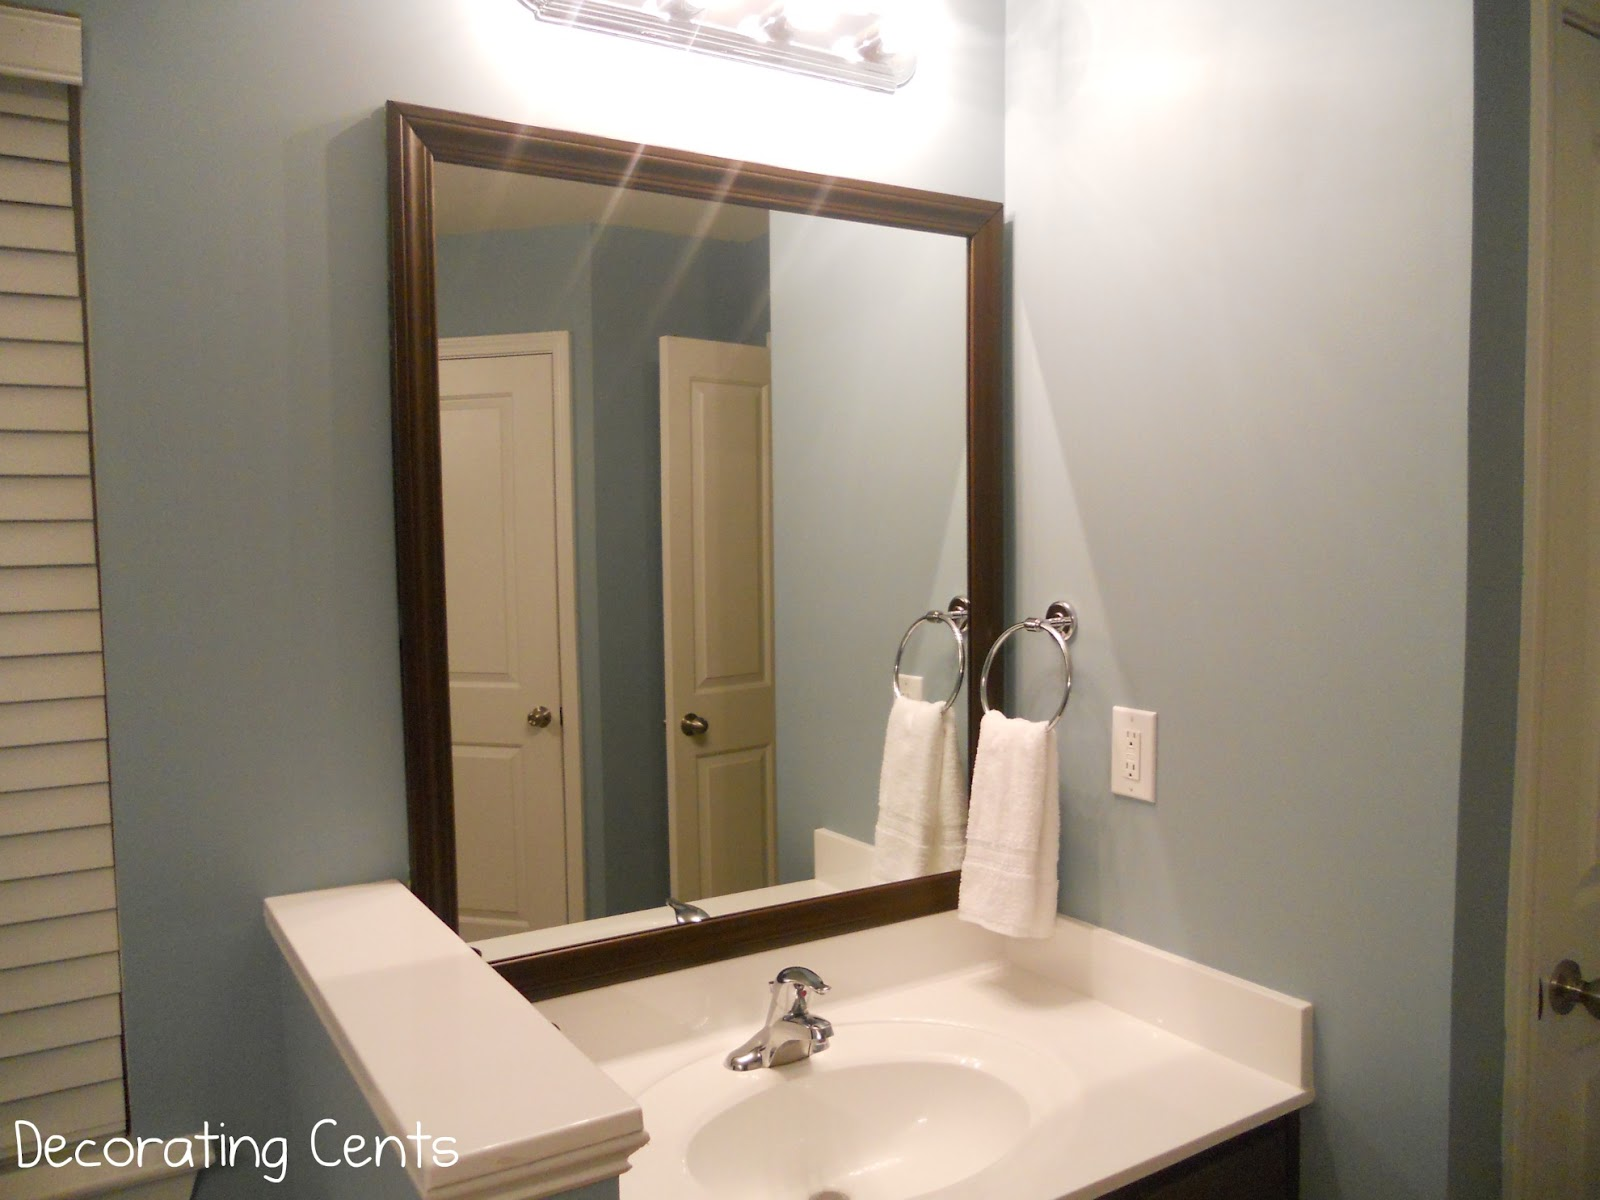 Mirror In The Bathroom Awesome Decorating Cents Framing The Bathroom Mirrors Decorating Design